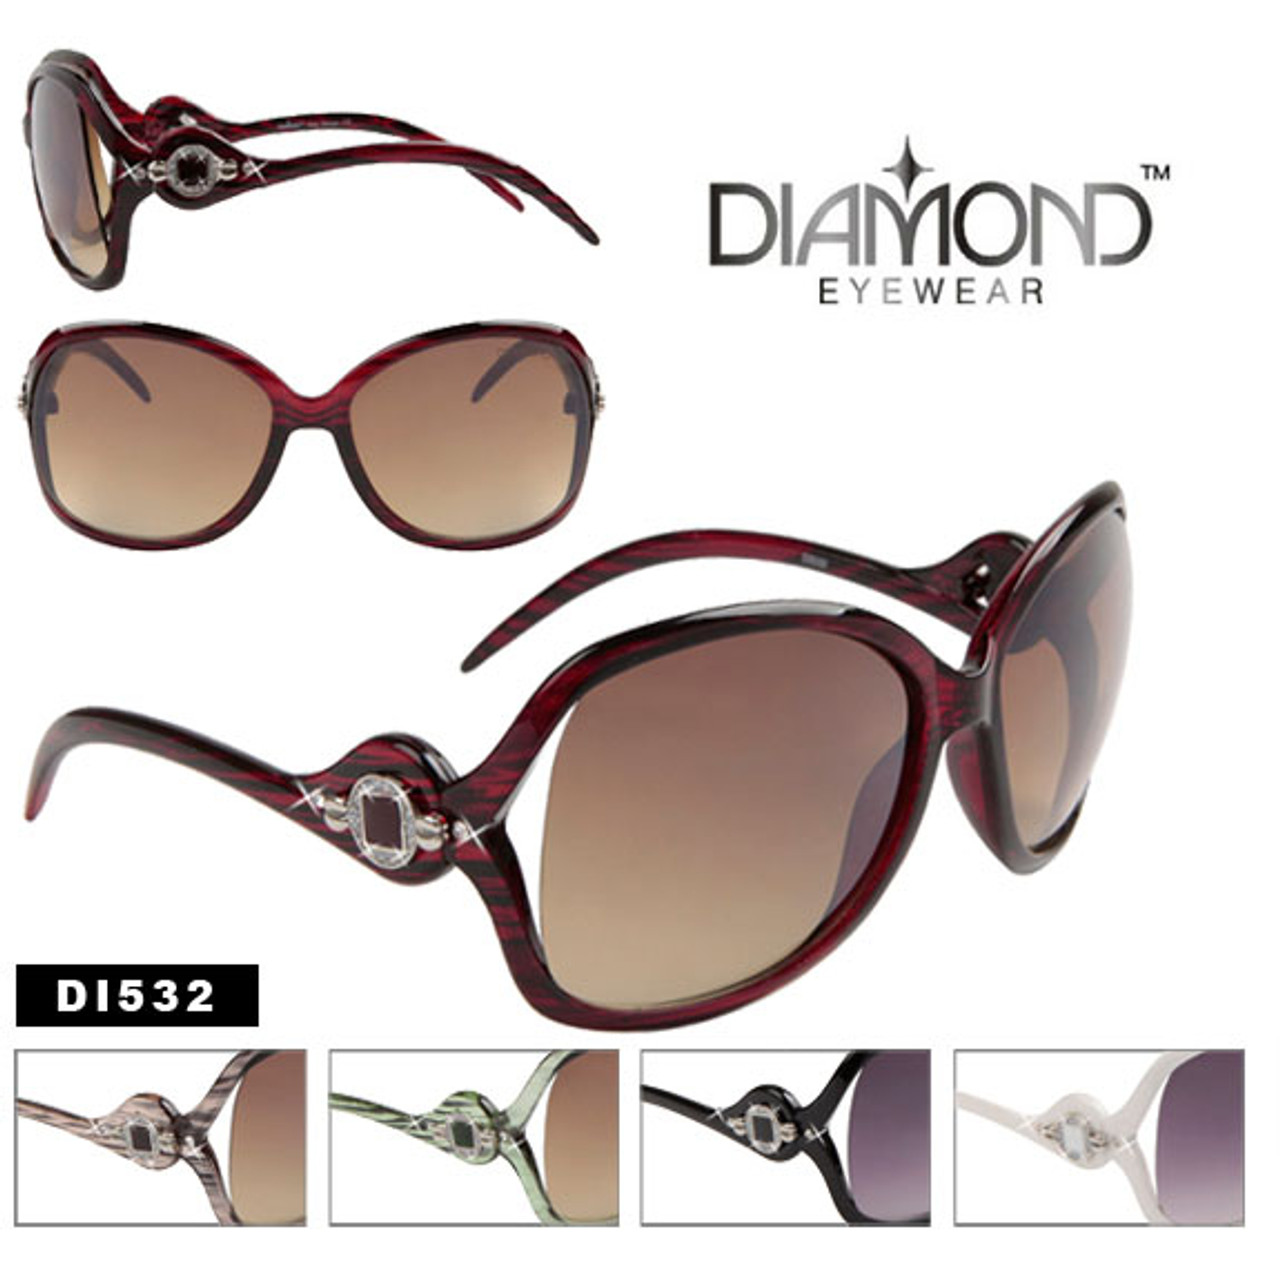 Rhinestone Diamond Eyewear Sunglasses